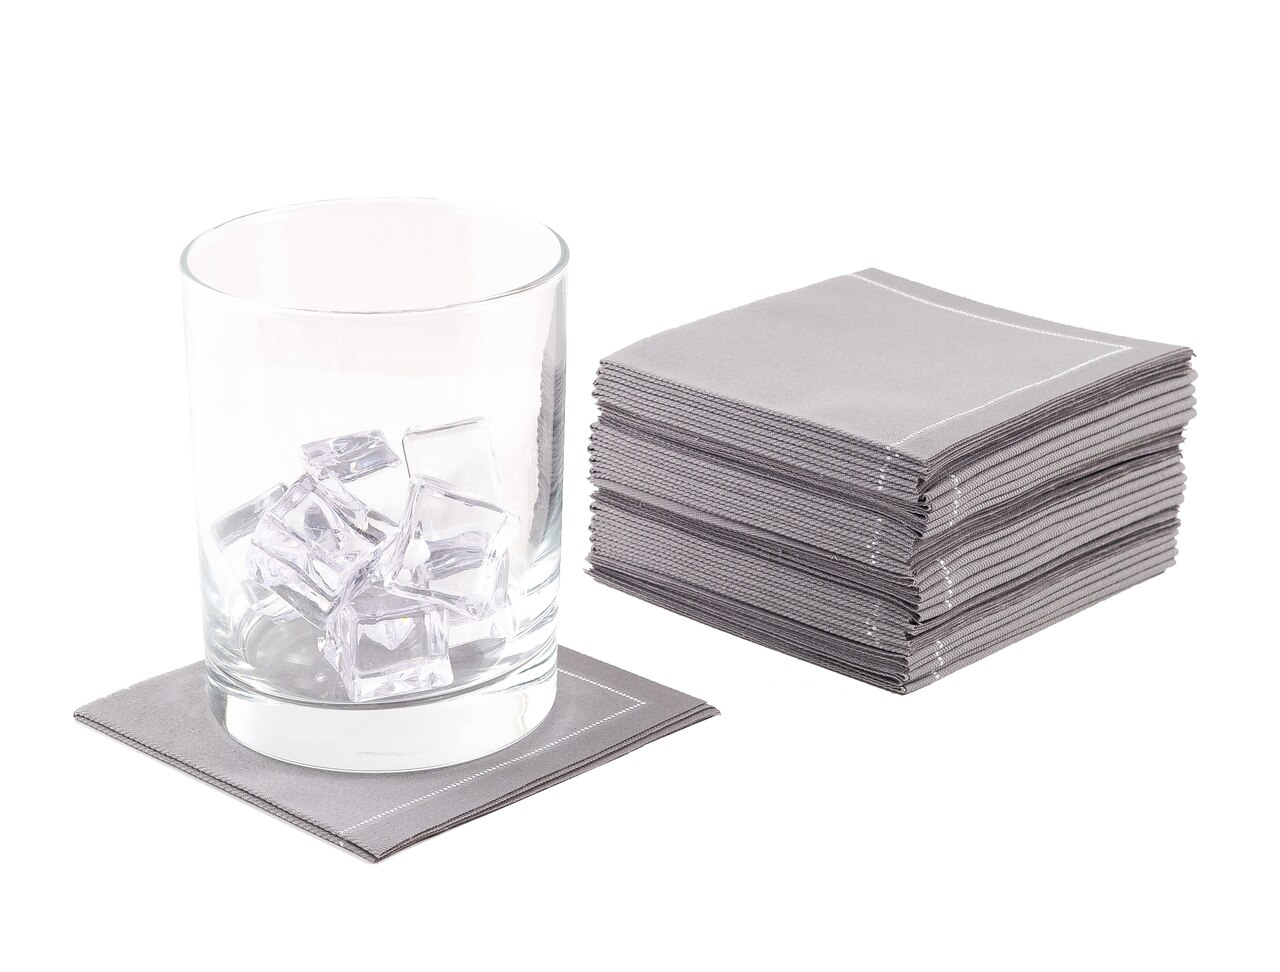 "Grey Cotton 1/4 Fold Cocktail Premium - 8"" x 8"" (folded 4"" x 4"") - 30 units"